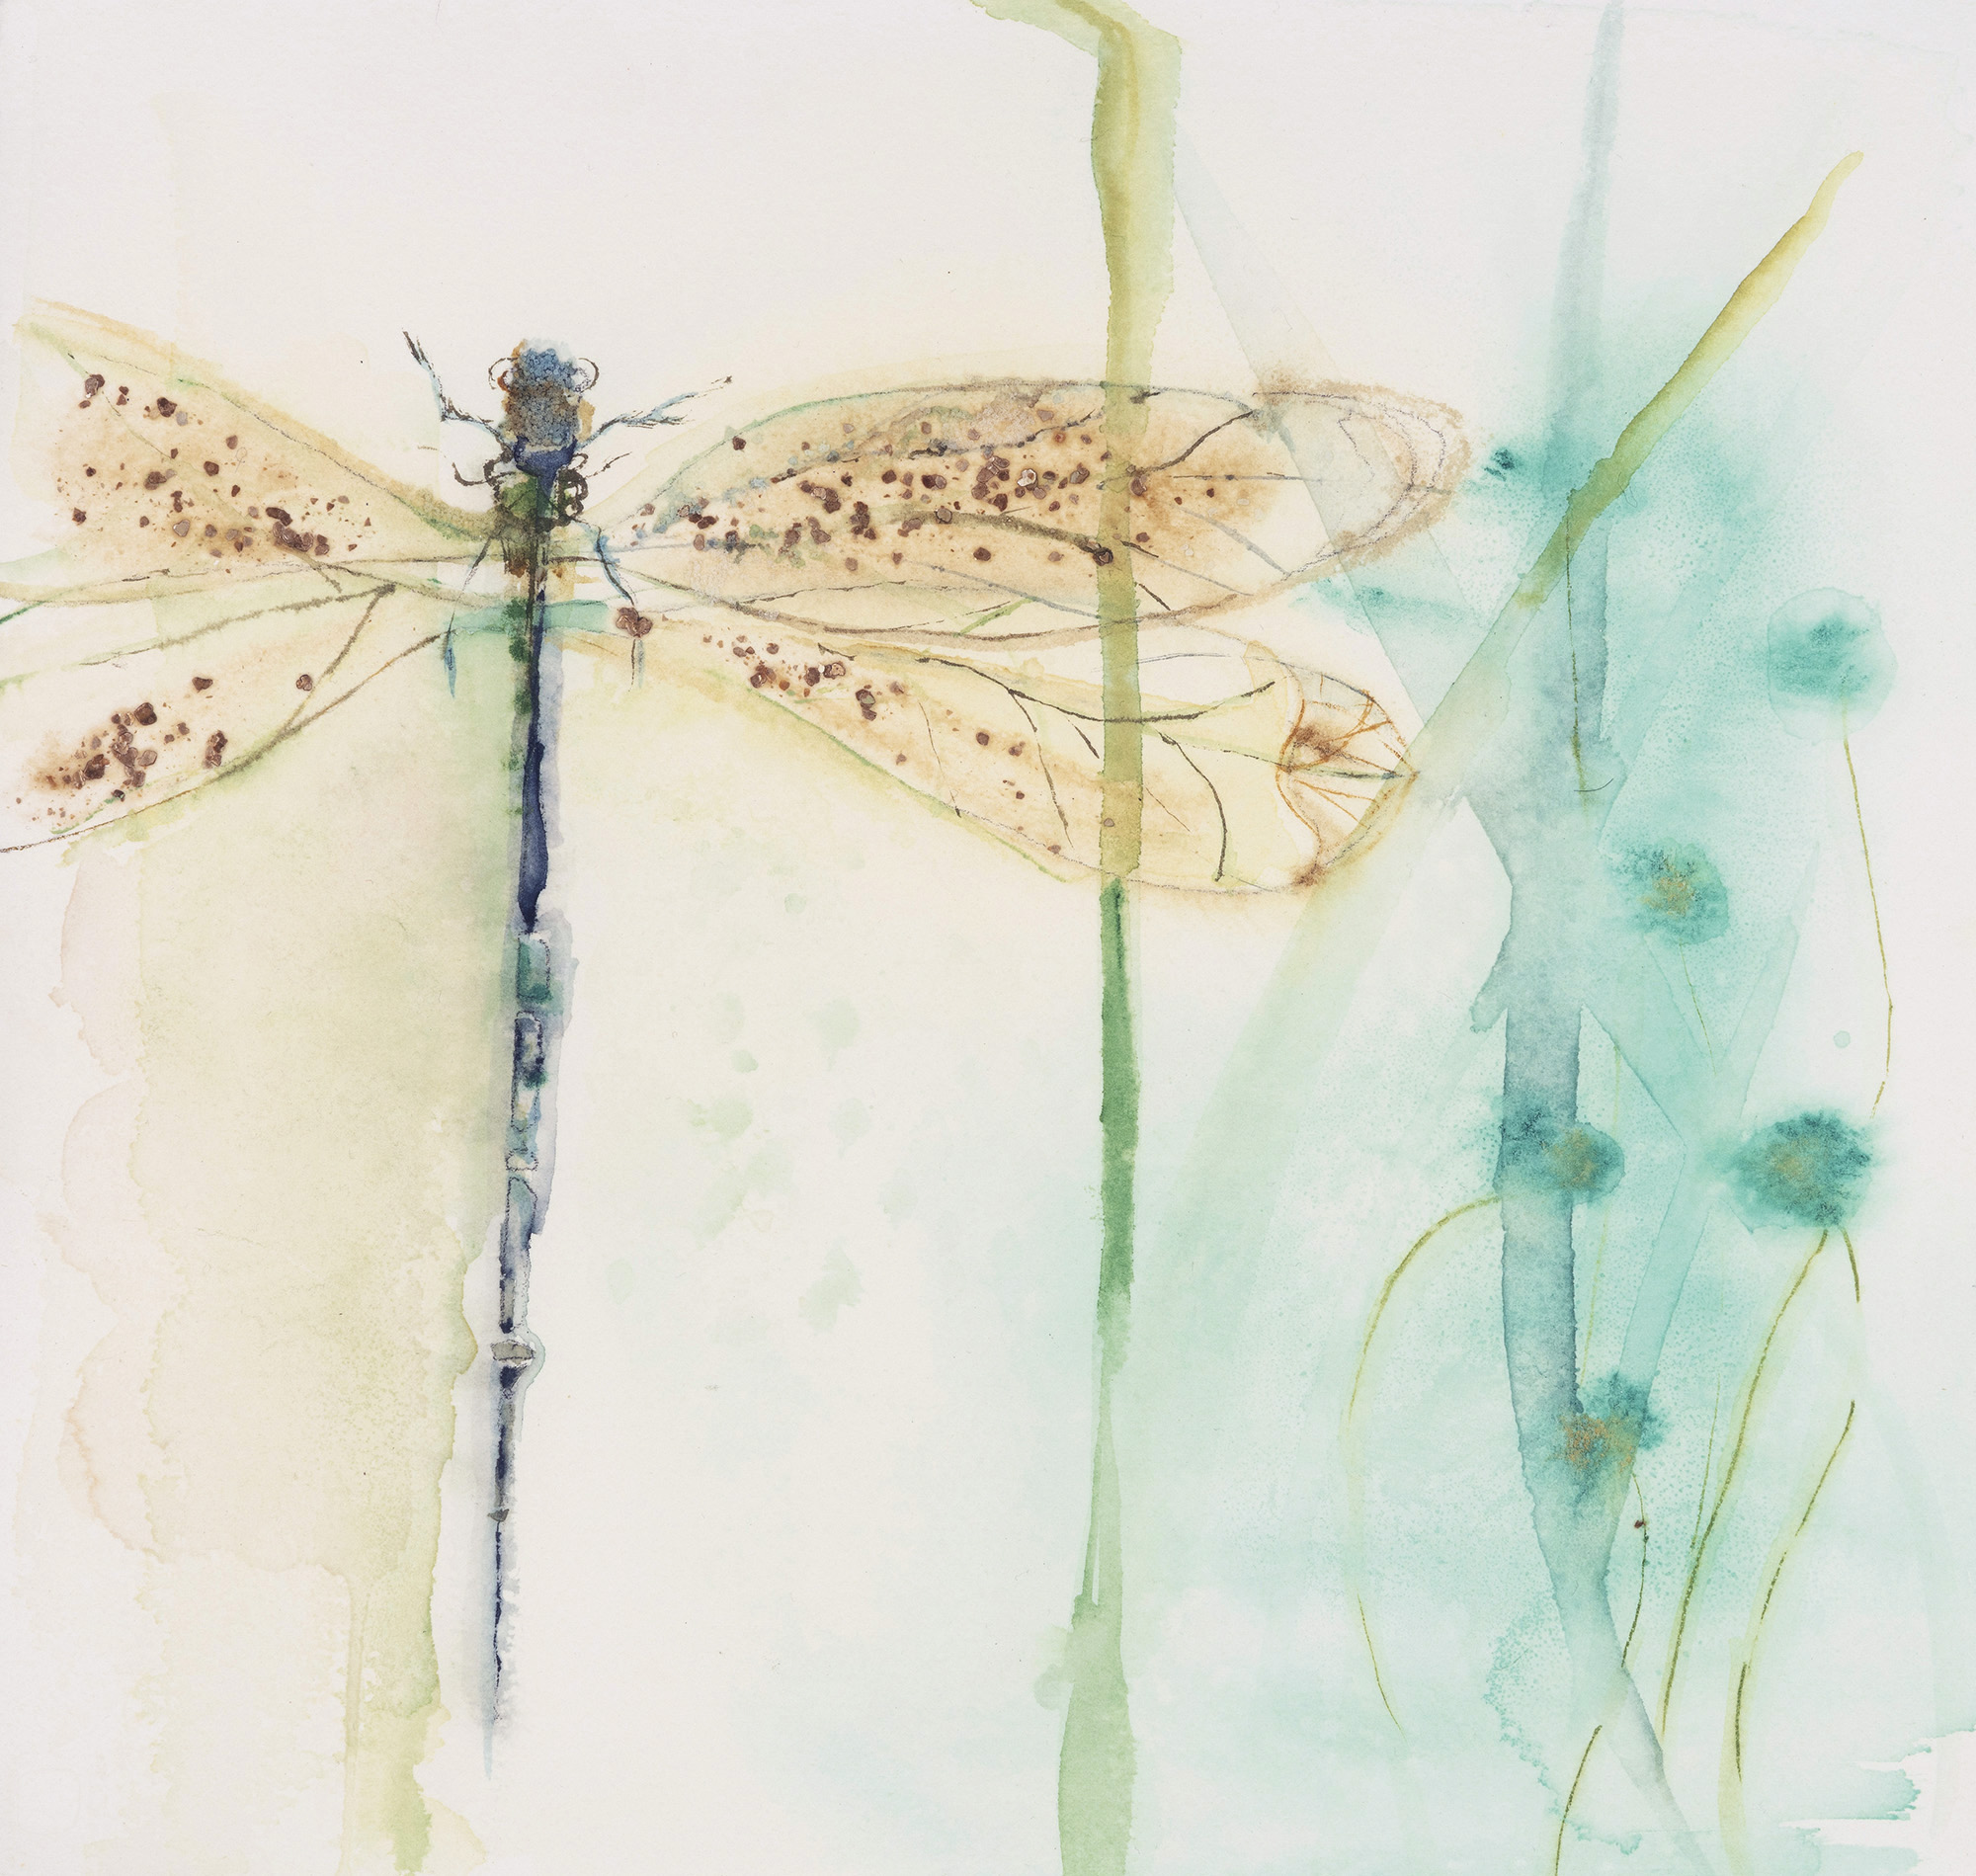 Dragonfly on Aquamarine, 2011, Watercolor on paper, 10.75 x 11 in.